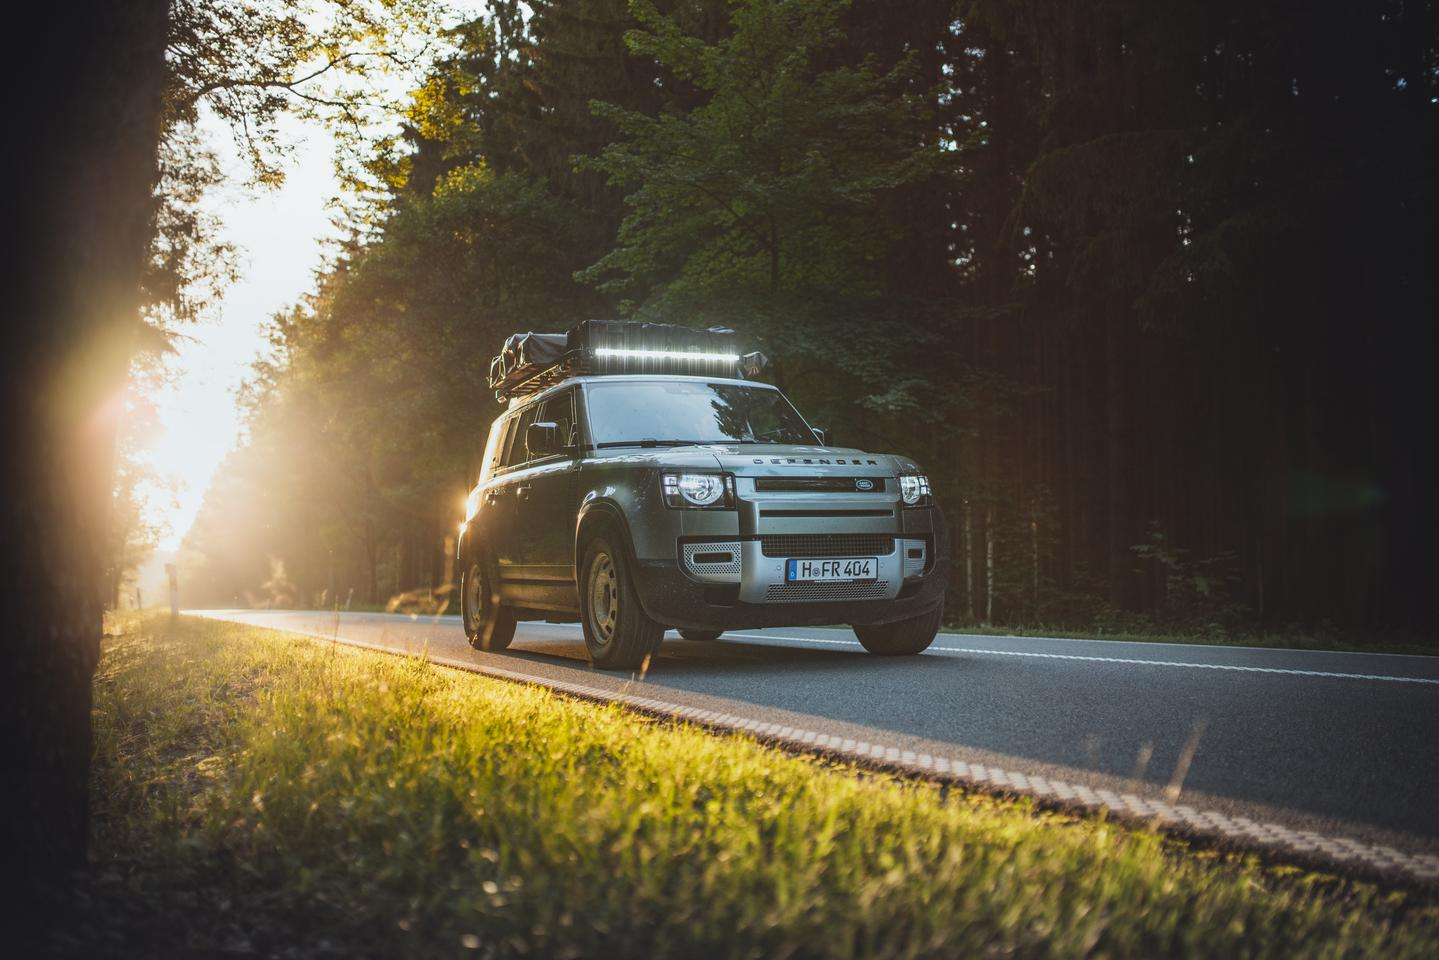 The Front Runner Slimline II rack automatically makes the new Land Rover Defender a highly versatile gear carrier